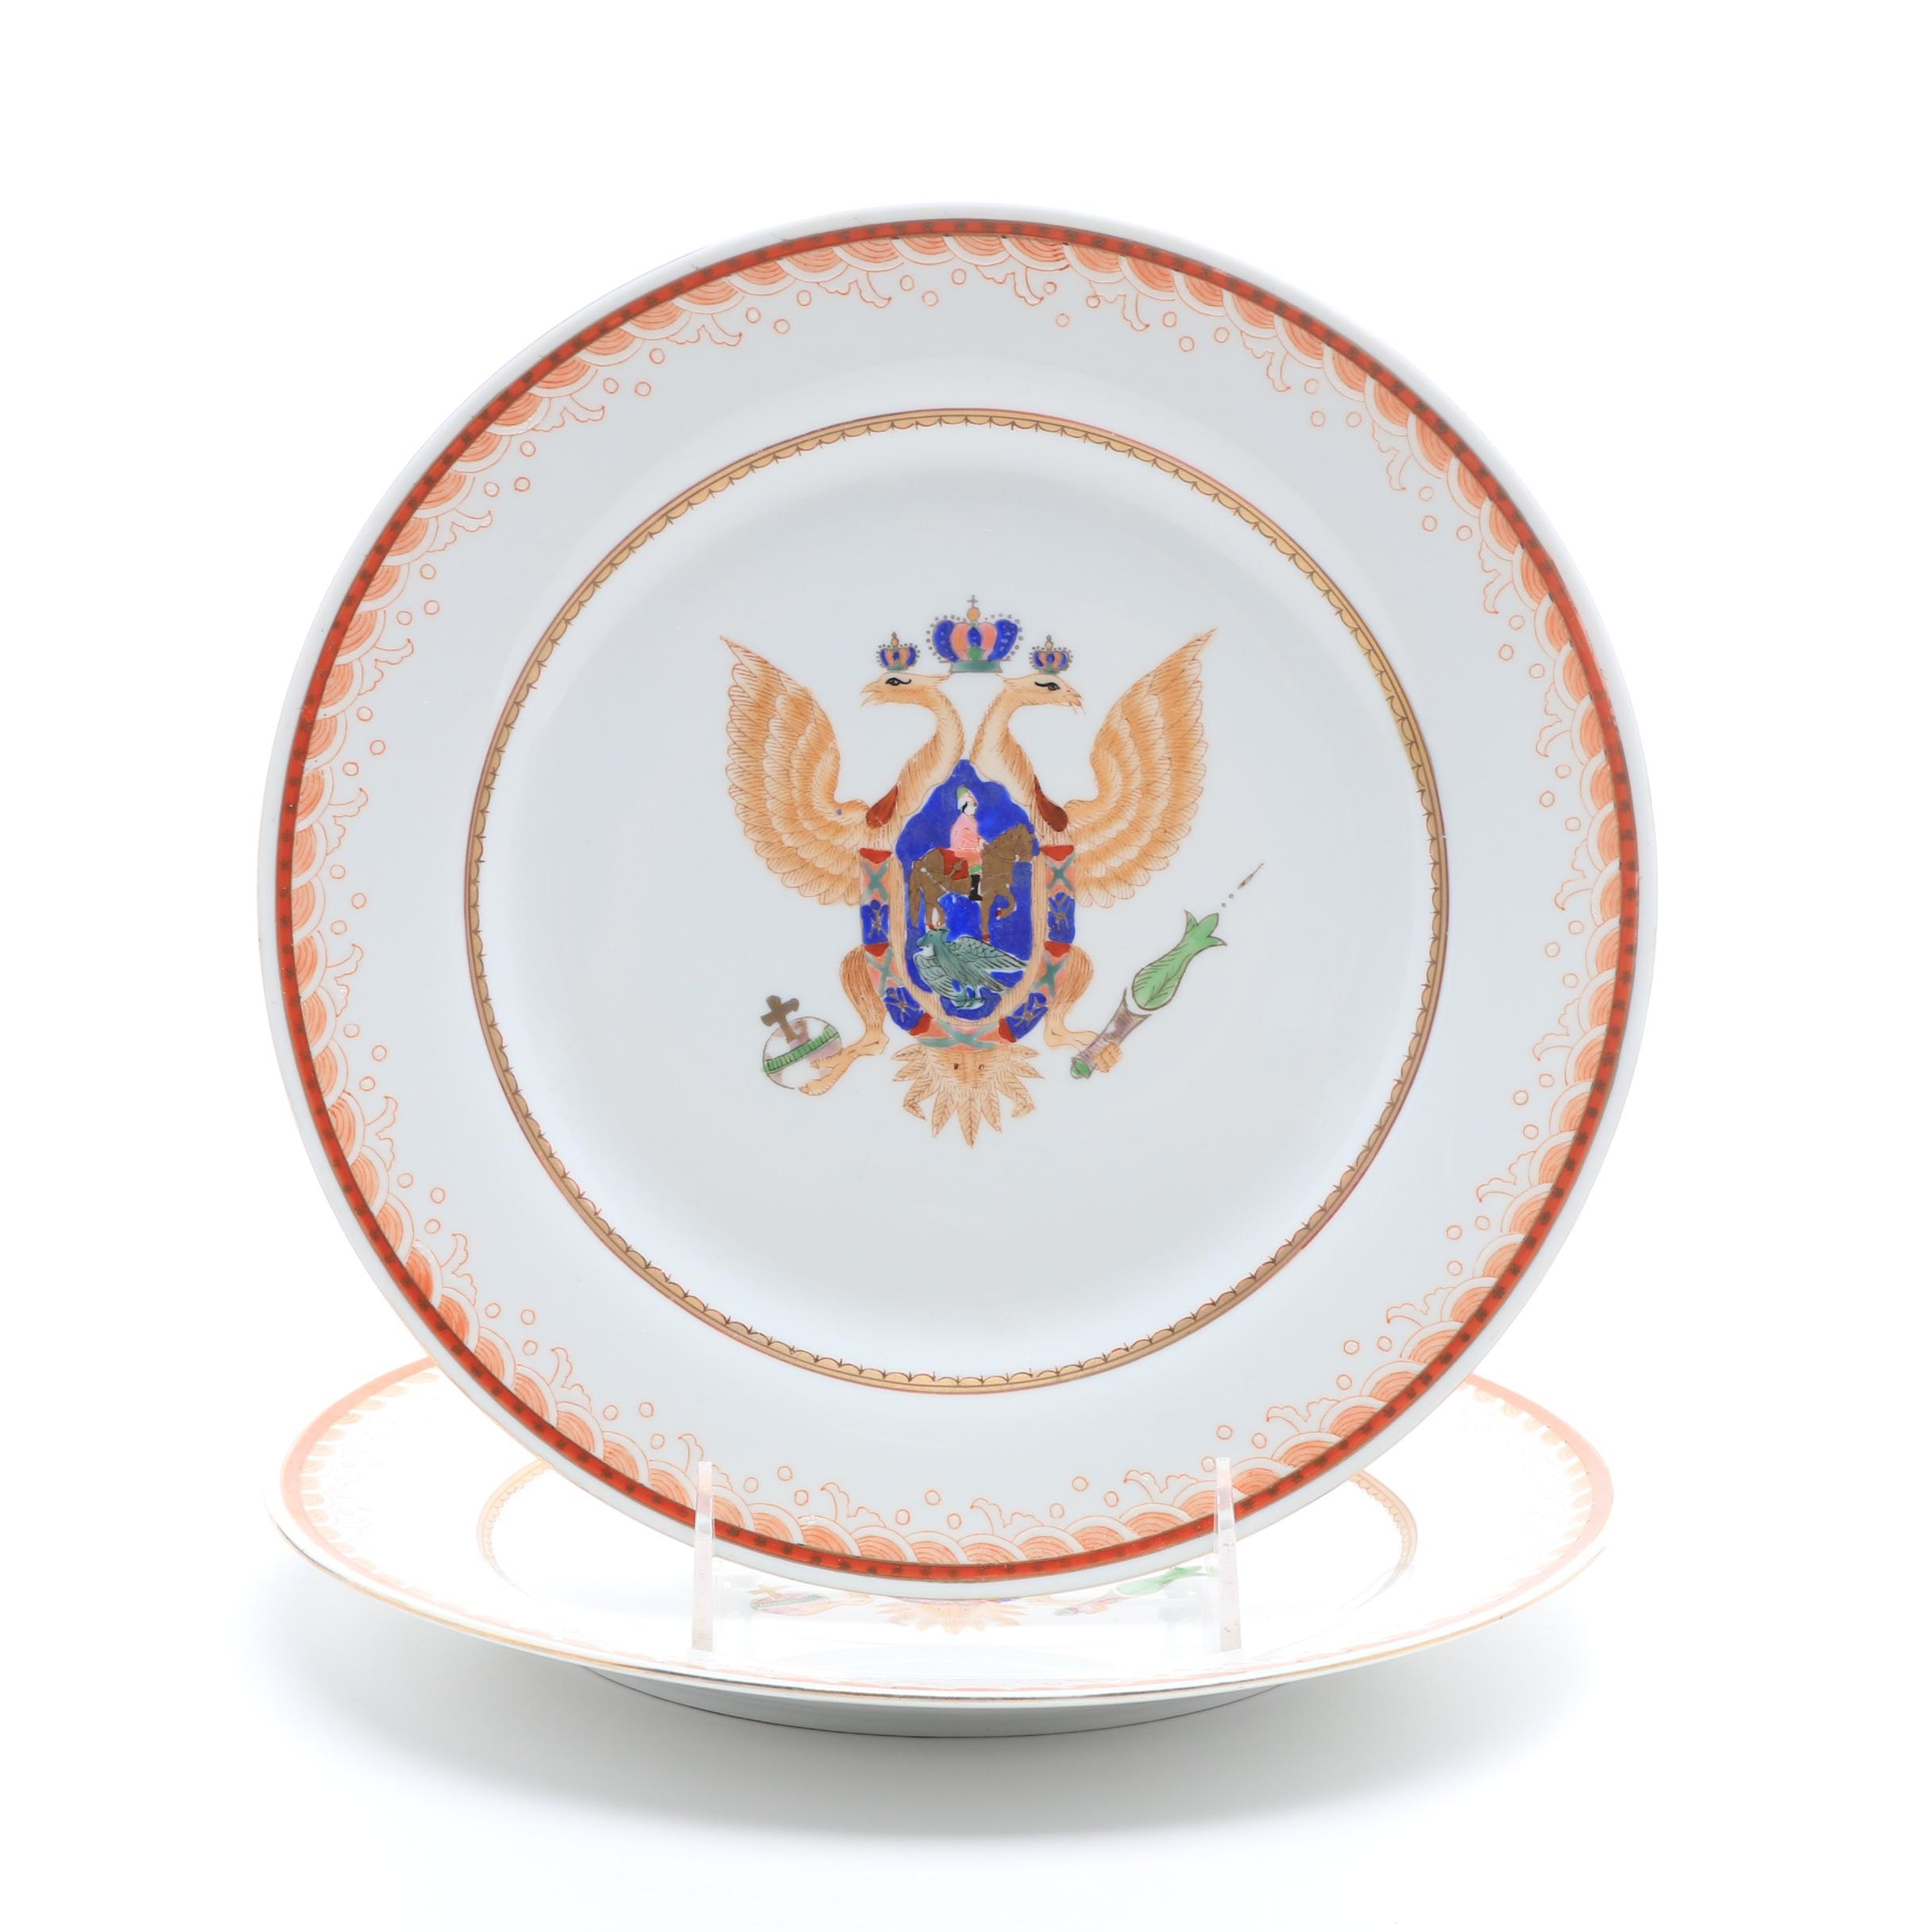 Pair of Chinese Armorial Export Plates with St. George and the Dragon